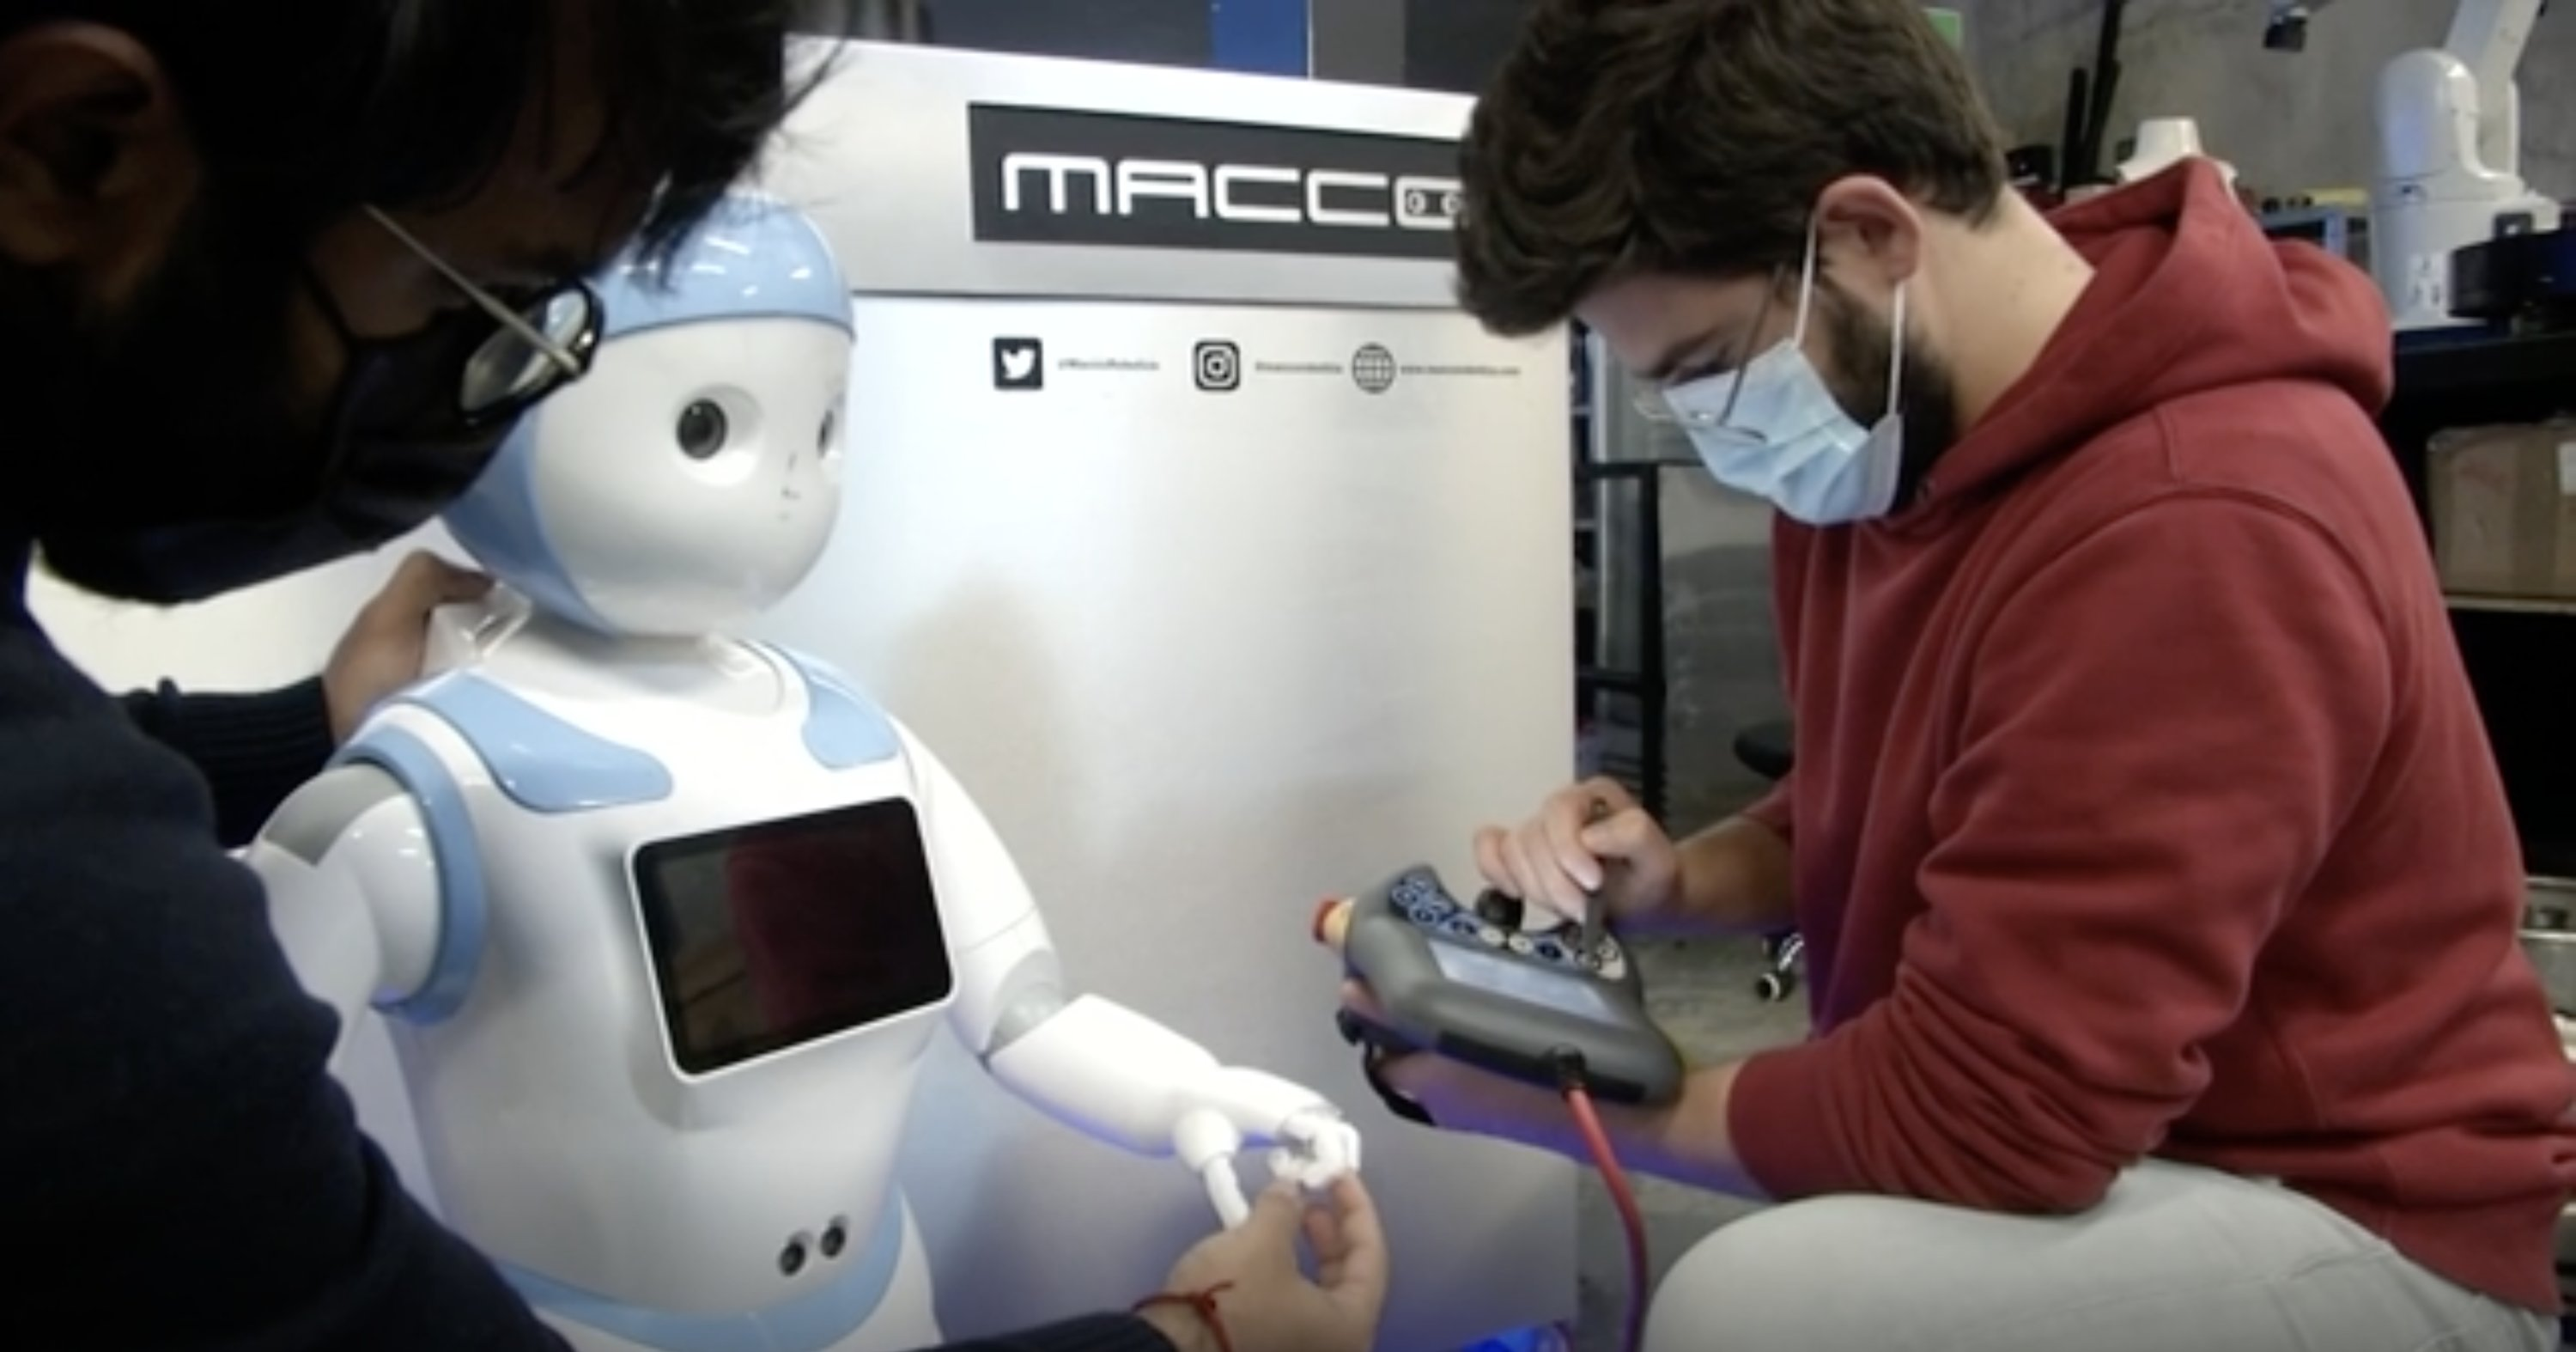 Robots Serve Drinks to Maintain Covid-19 Rules in Spain